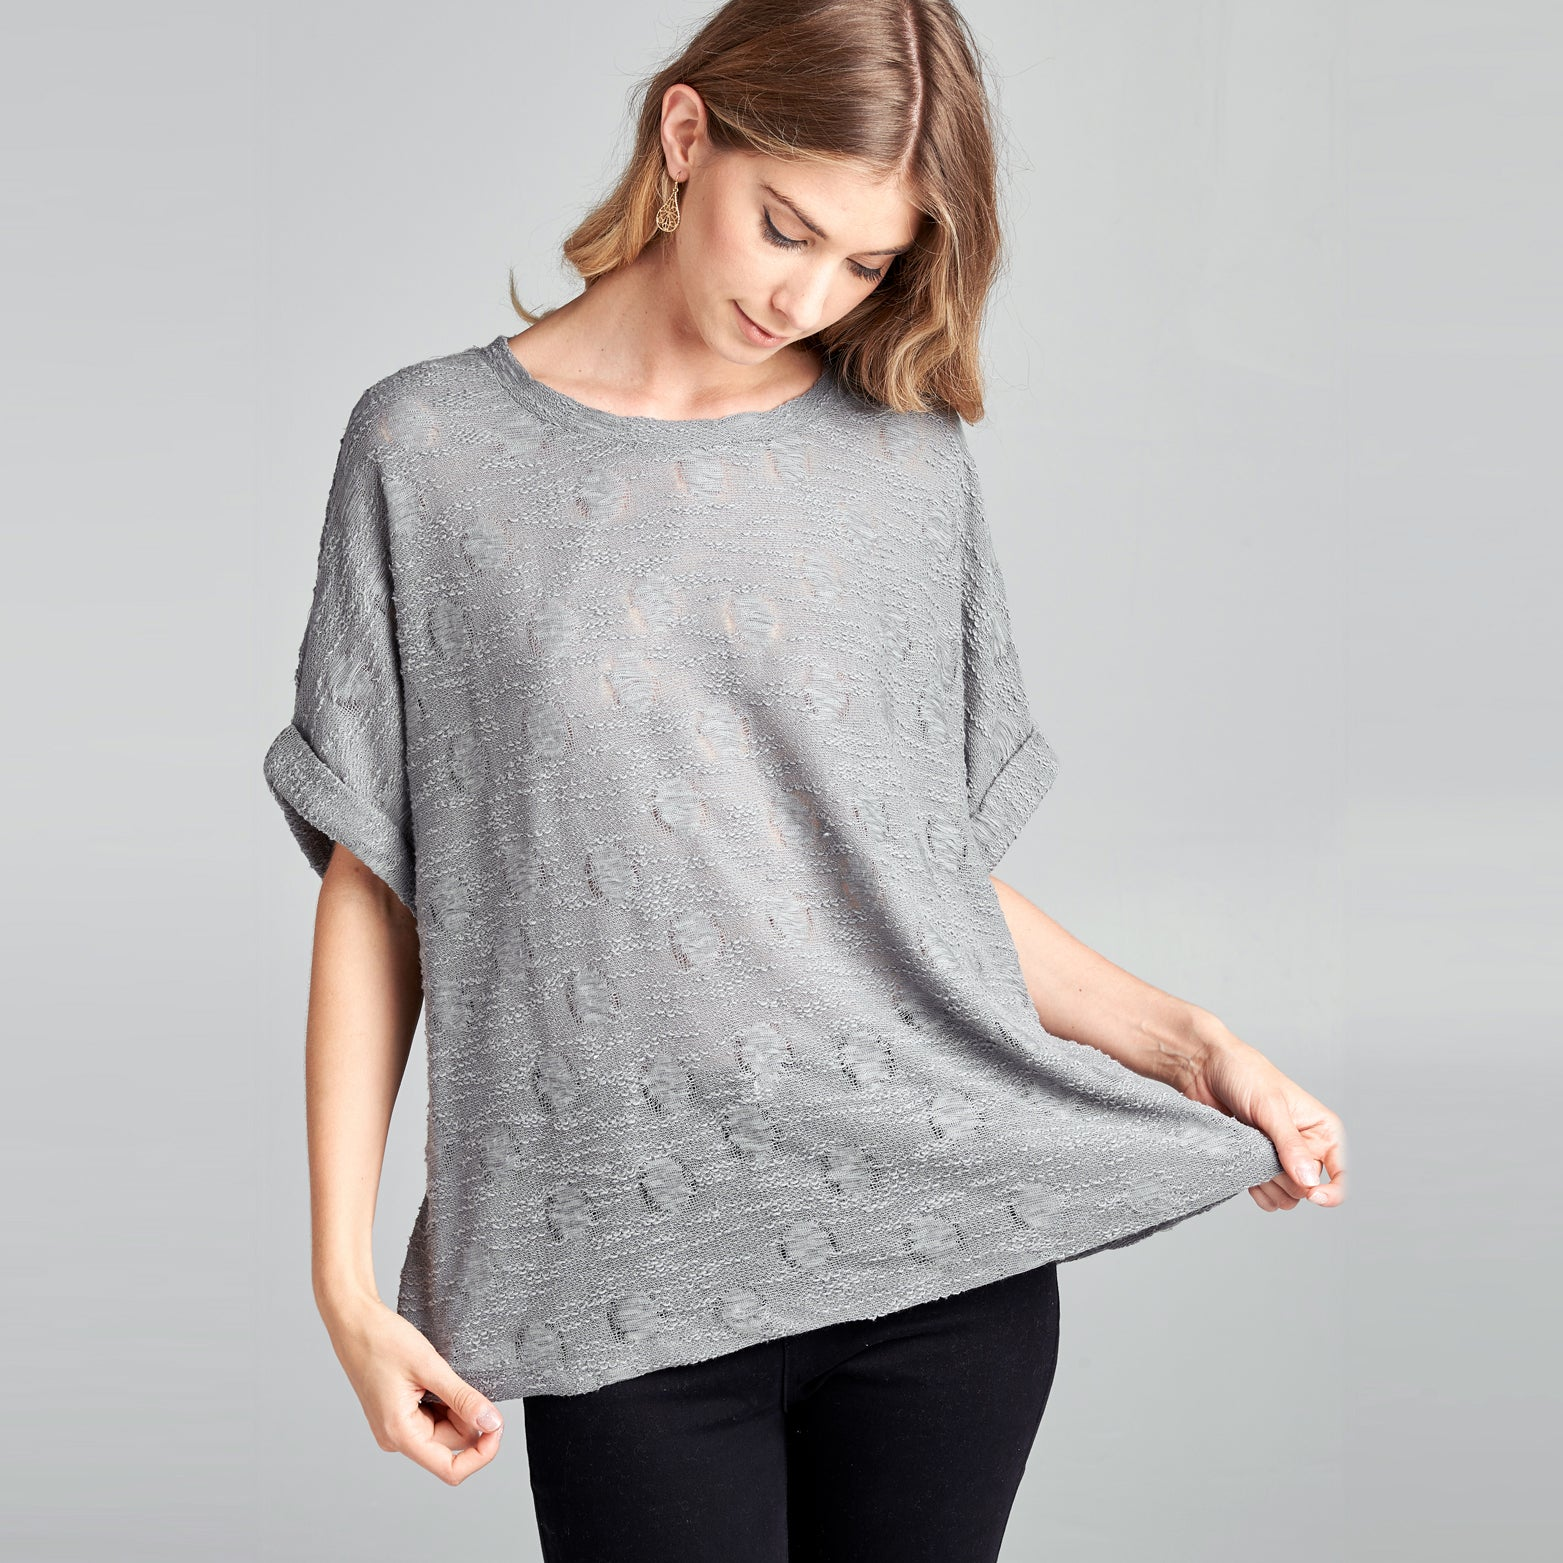 Breathable Slub Knit Top